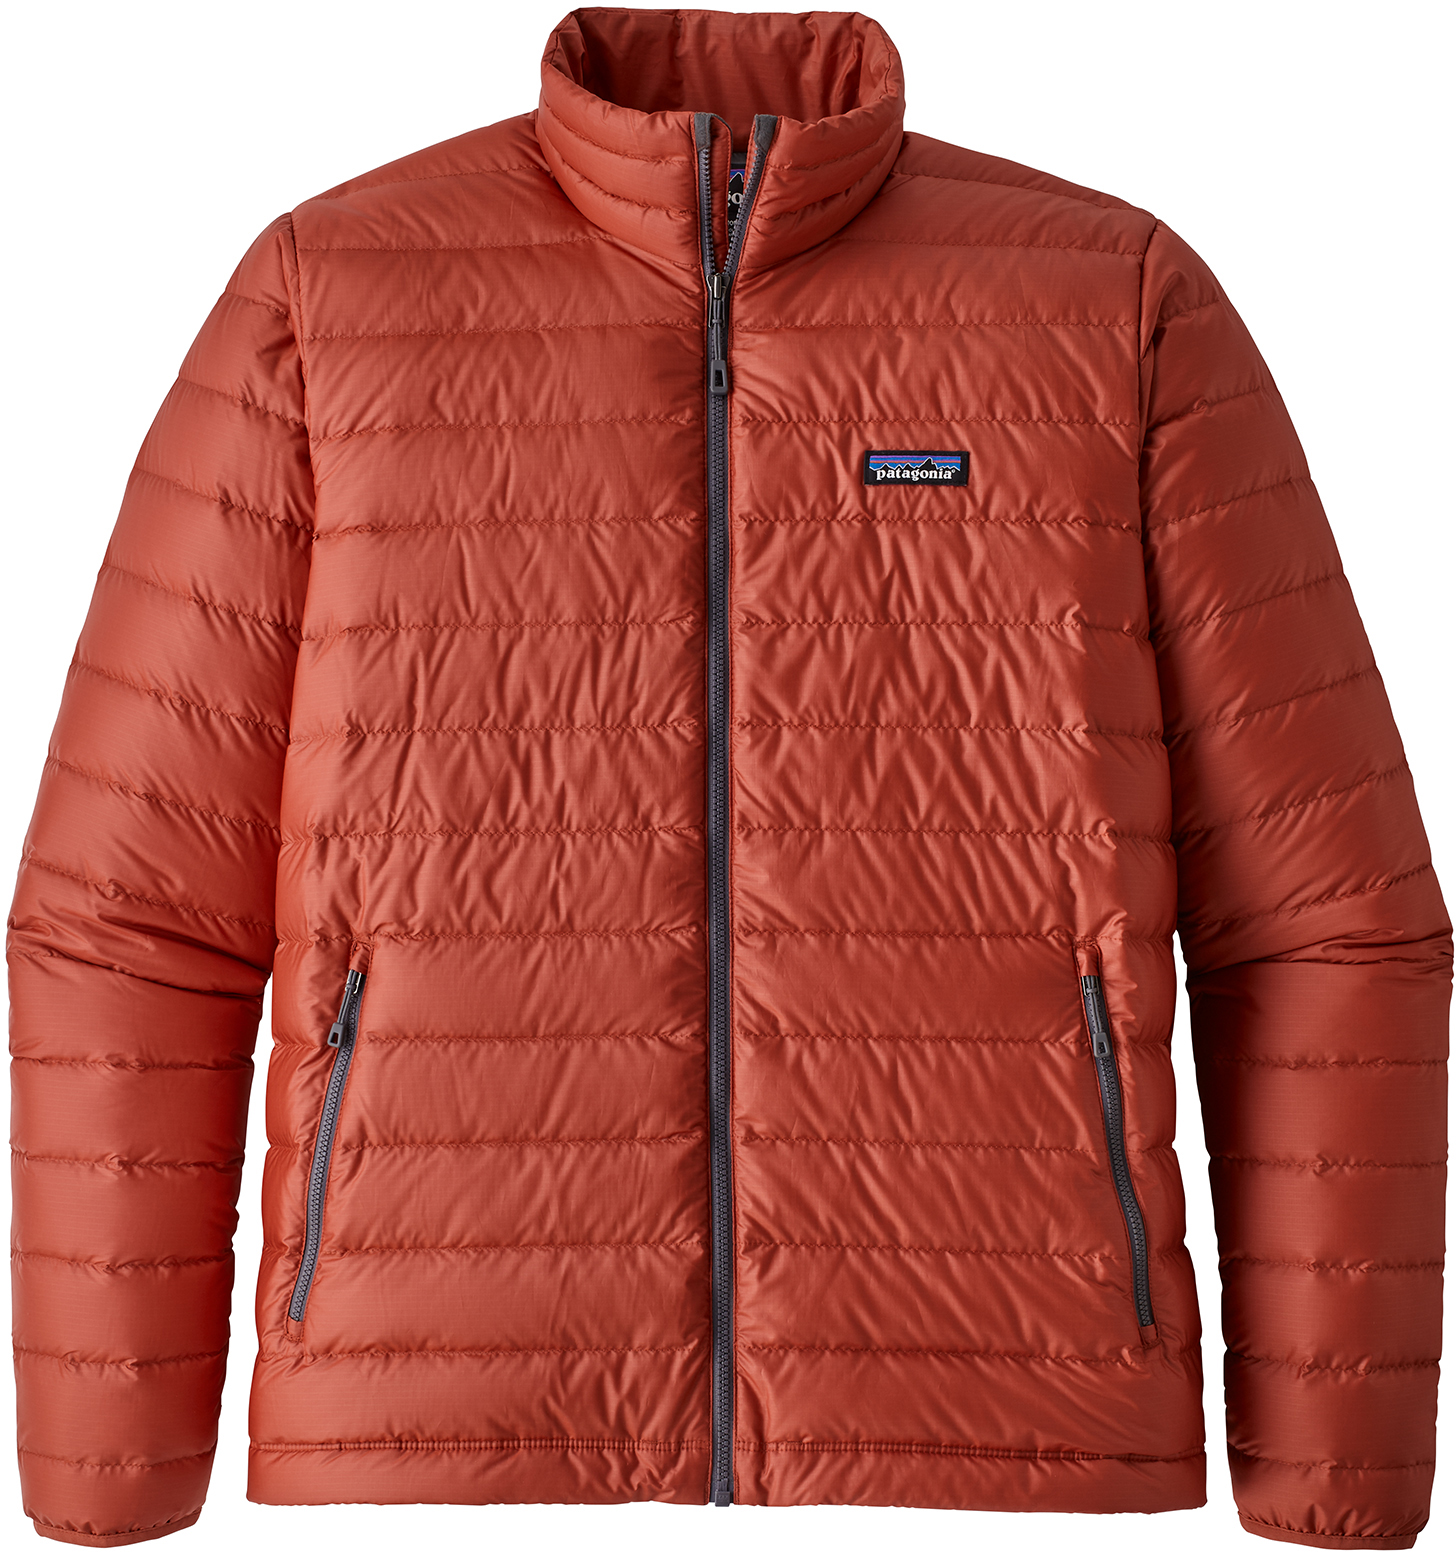 59890a4e1 Patagonia All products